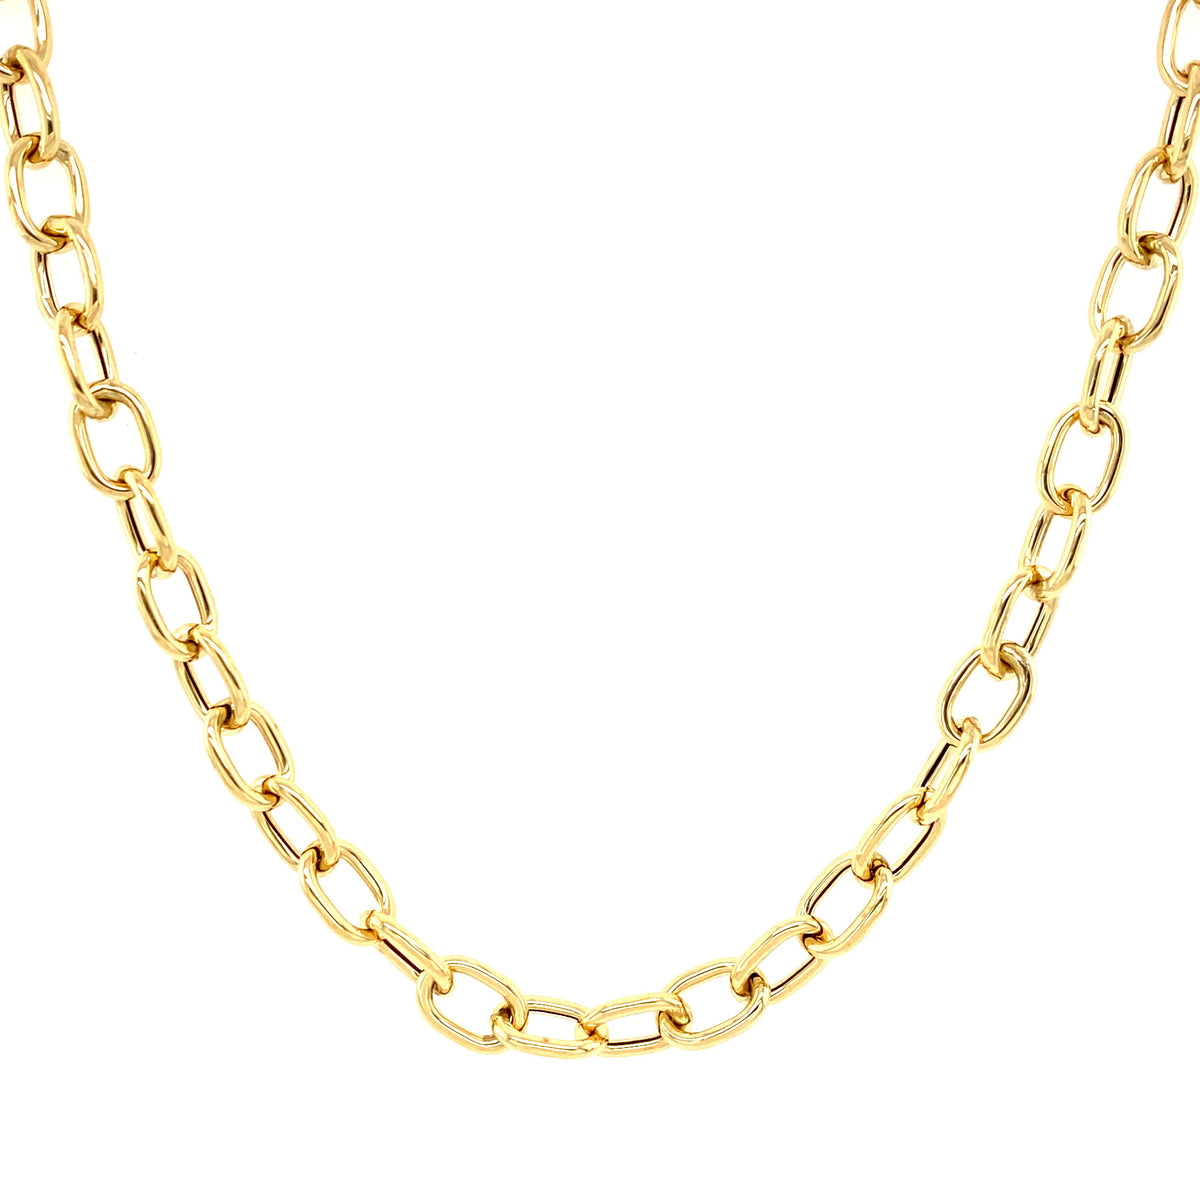 14K Gold Oval Link Chain Necklace Izakov Diamonds + Fine Jewelry